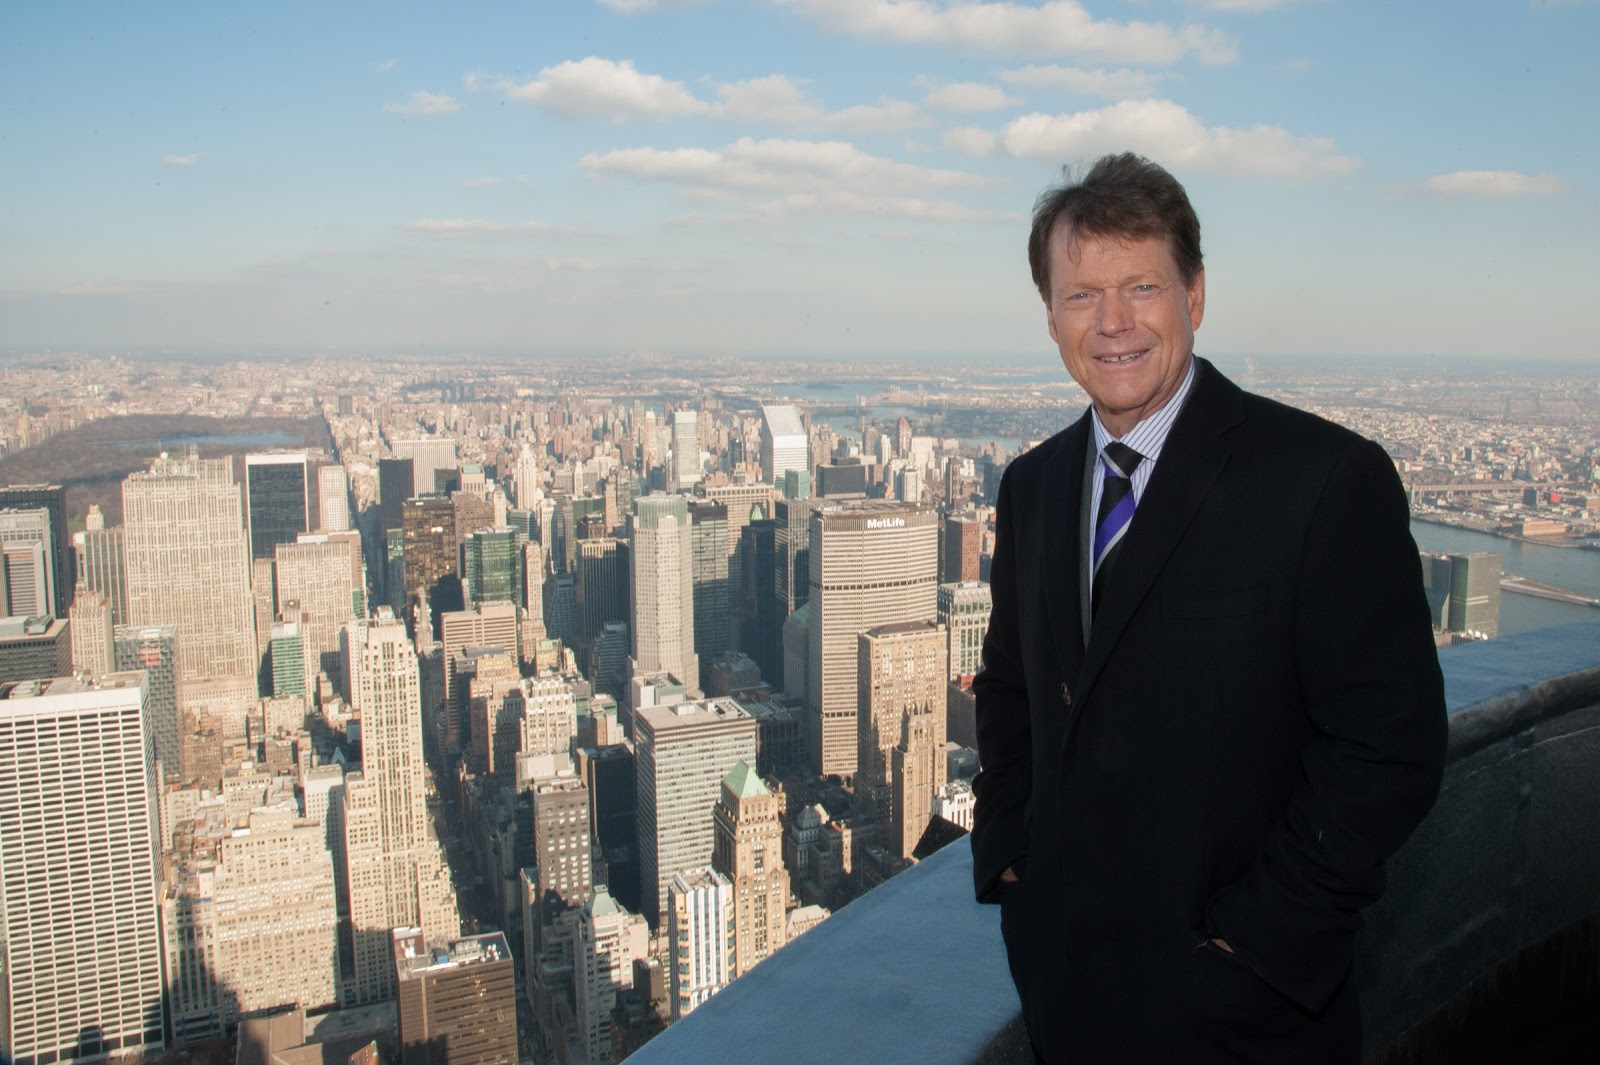 American golfer 2014 u s ryder cup captain announcement for 103rd floor empire state building